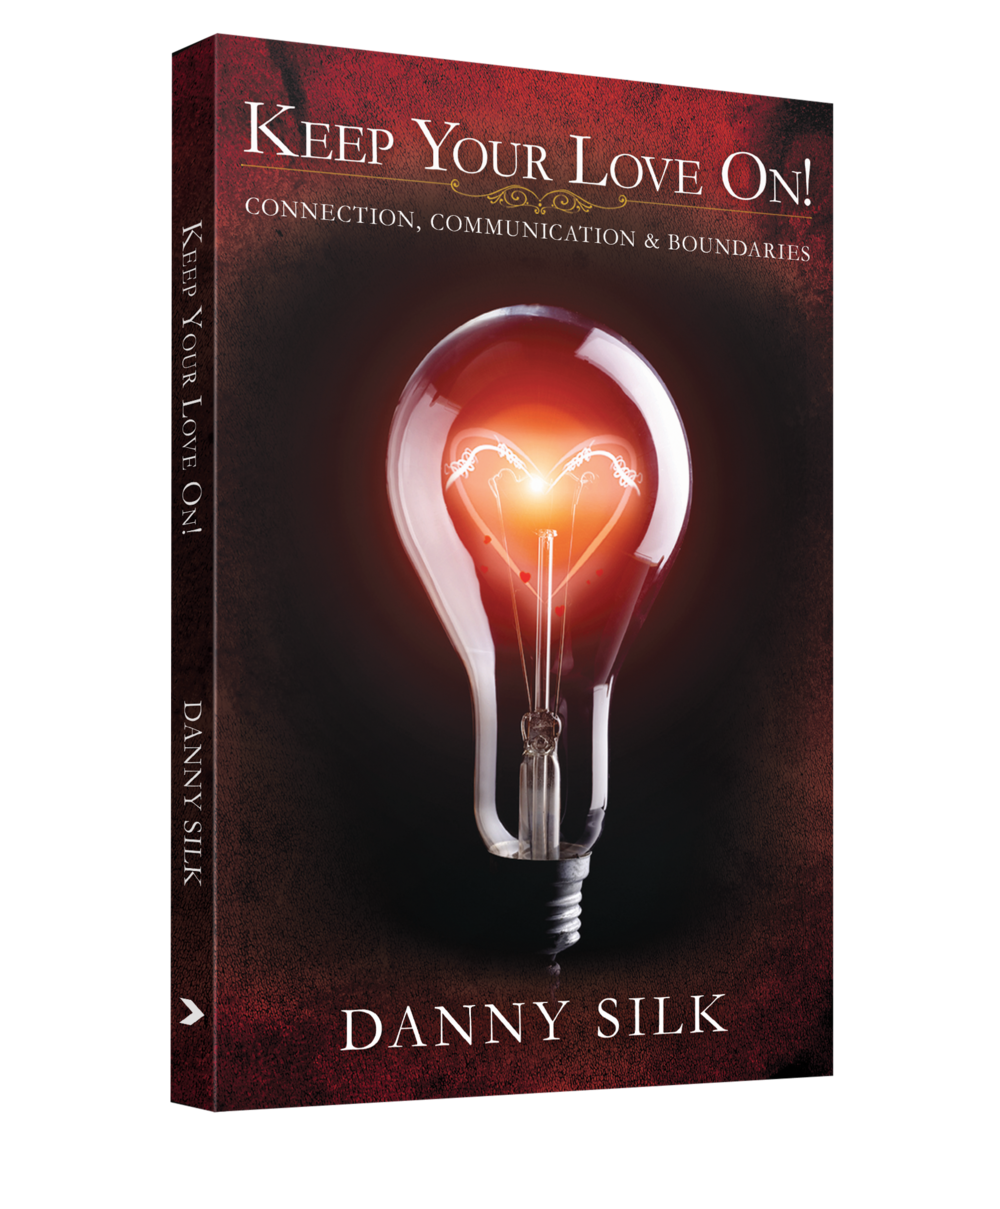 Book Cover Design / Keep Your Love On!